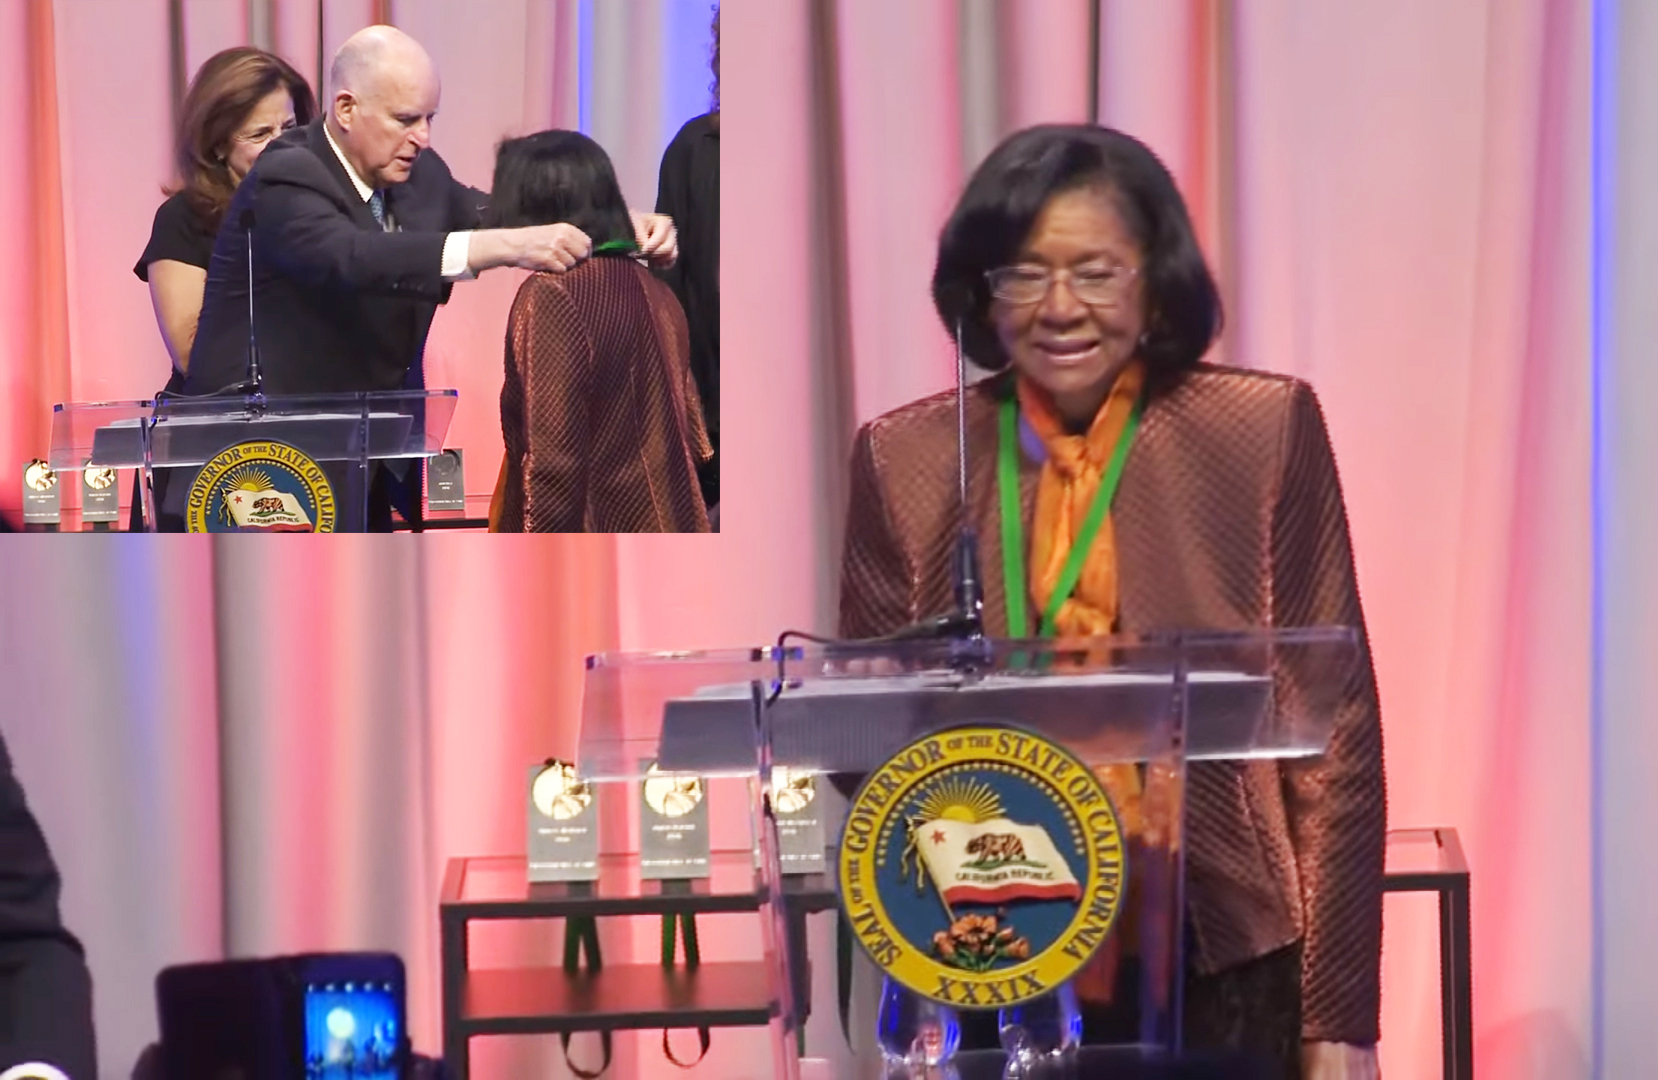 TV Journalist Belva Davis Honored by the Governor   San